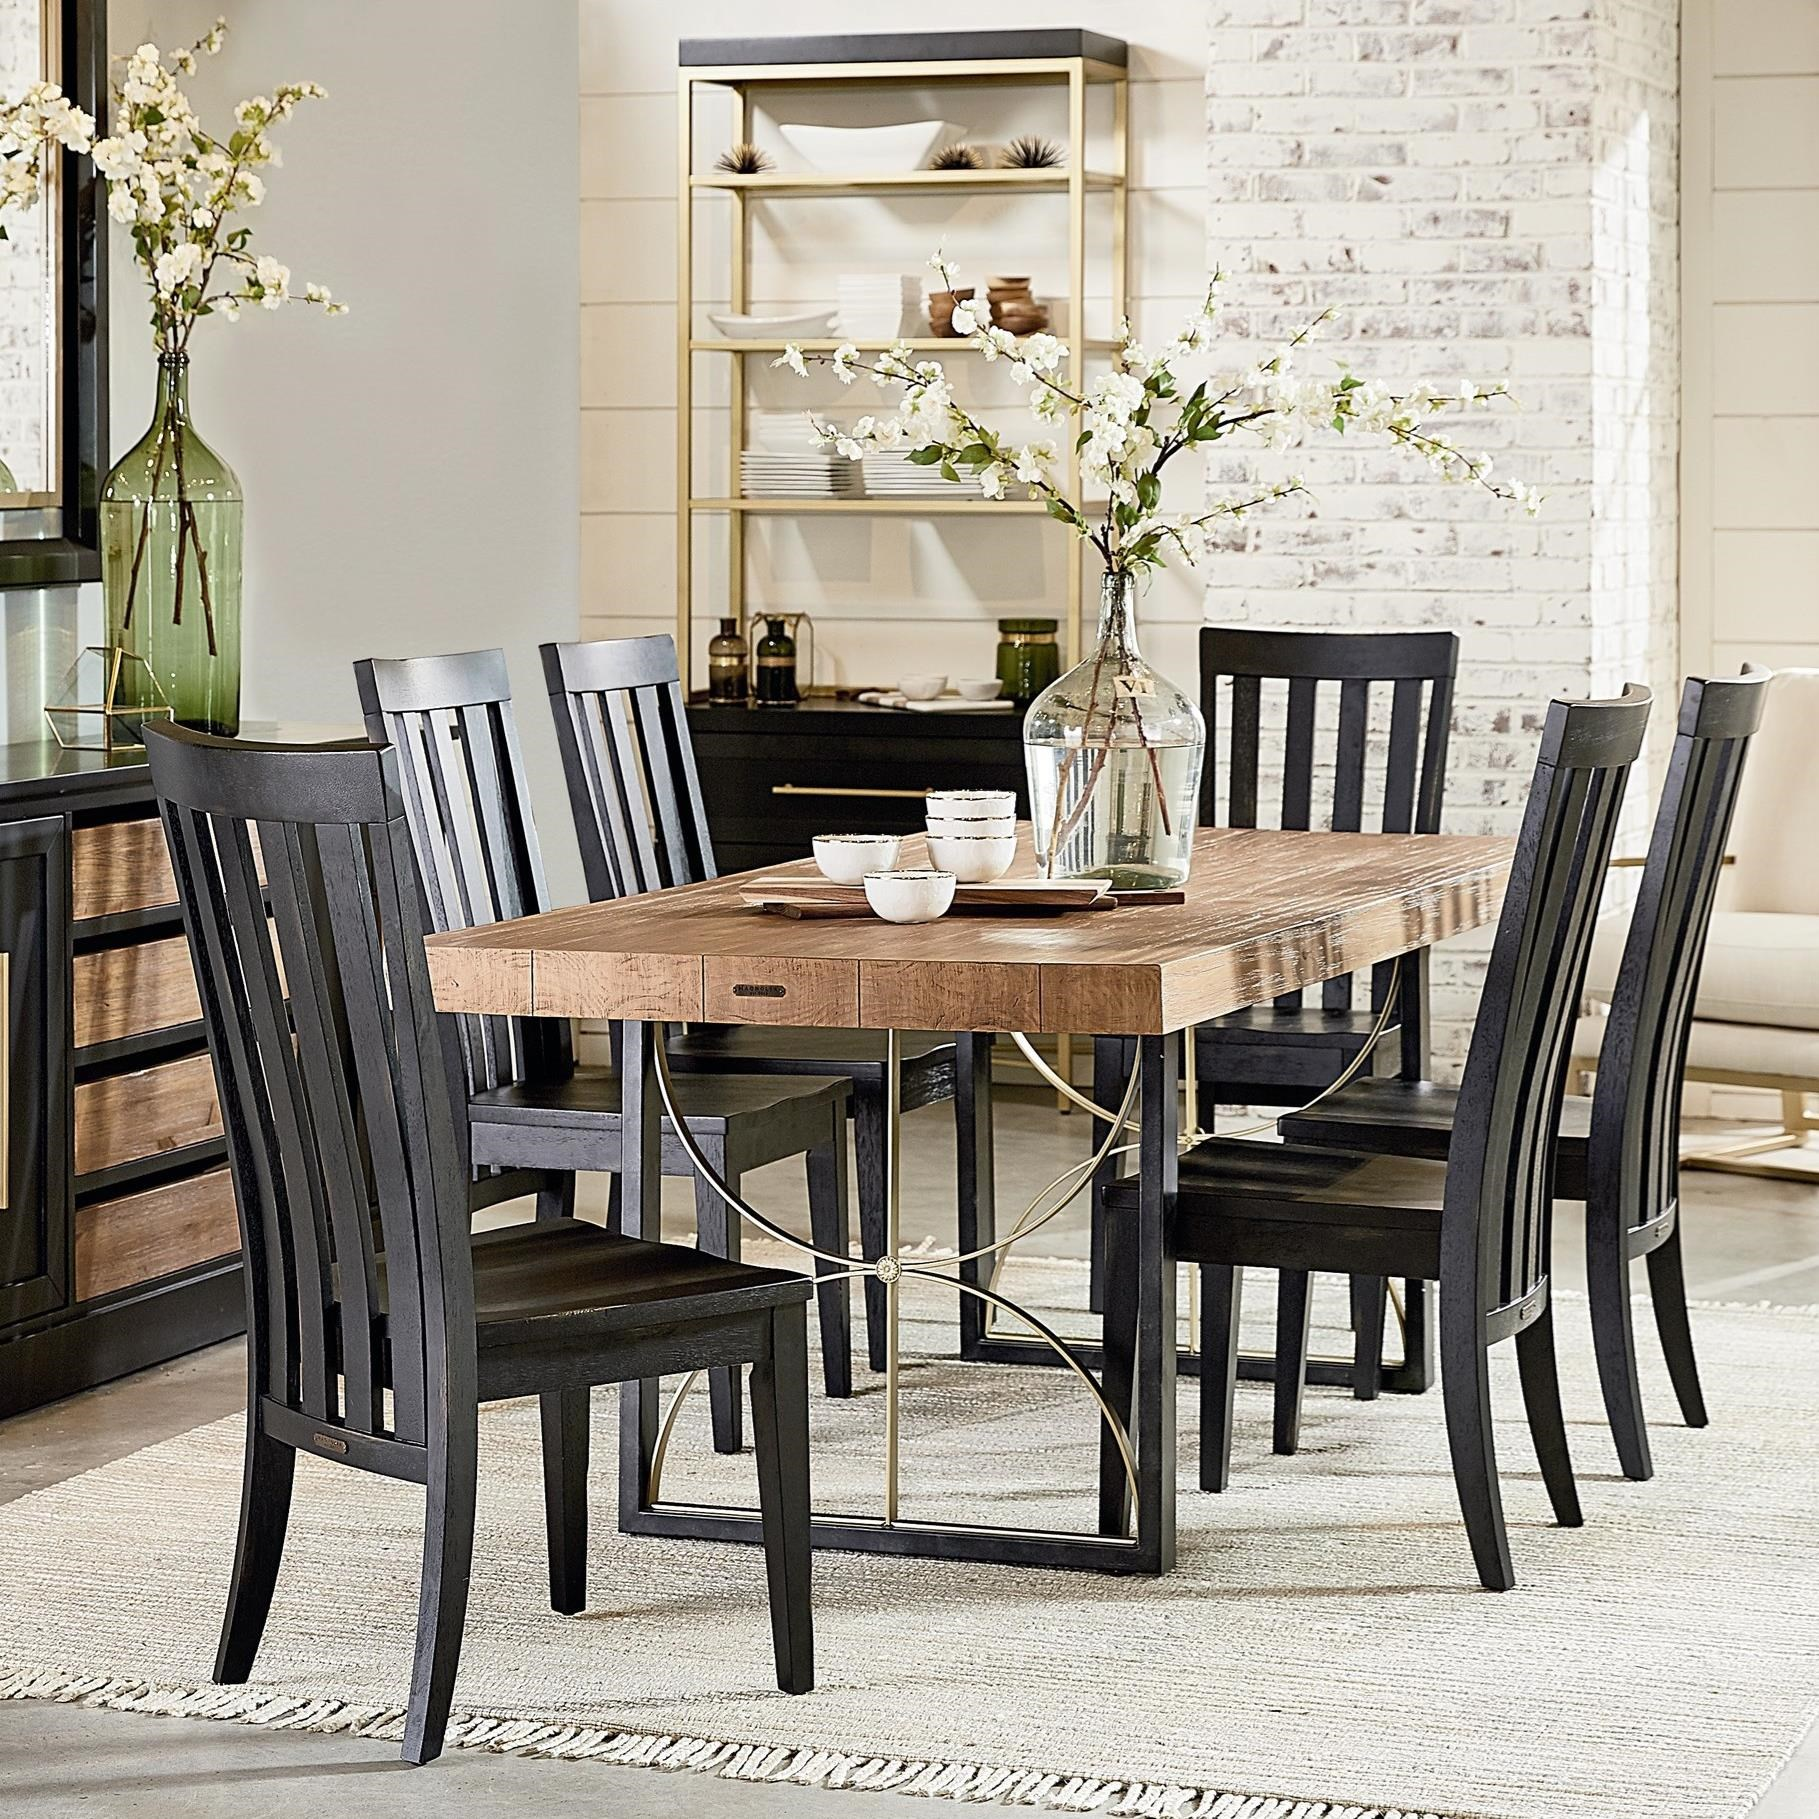 Magnolia home by joanna gaines modern 7 39 contemporary for Magnolia dining table